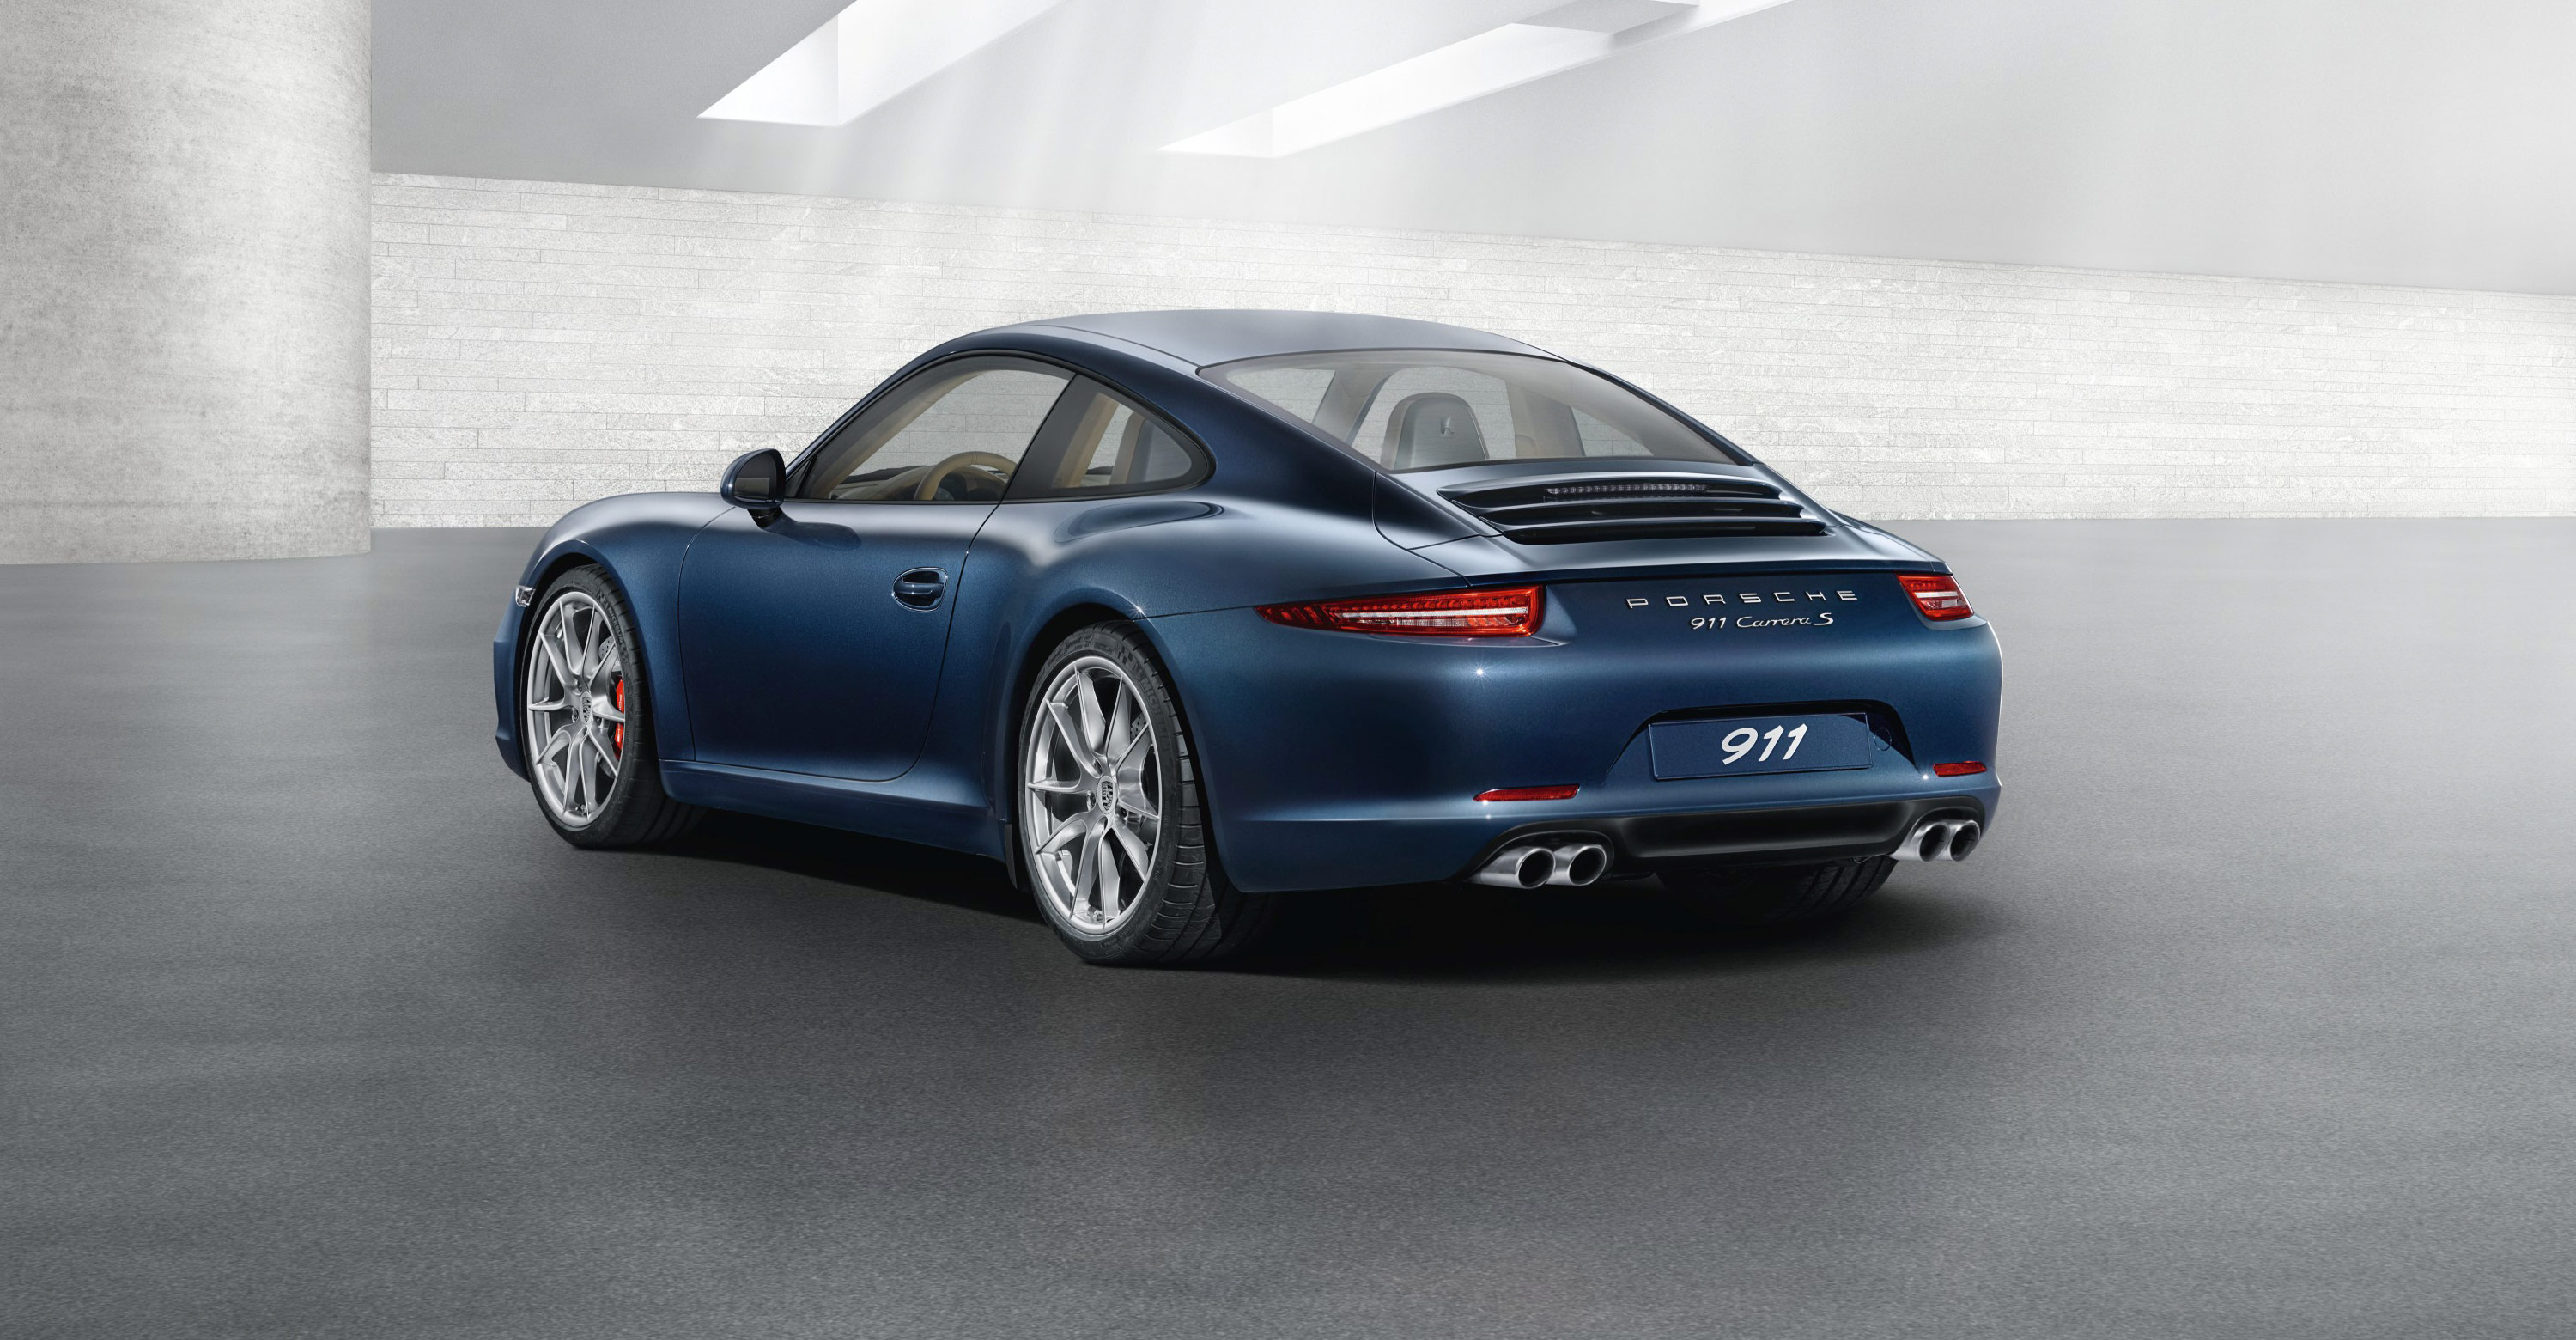 0 to 62mph OFFICIAL 2012 Porsche 911 Carrera S Coup 991 The